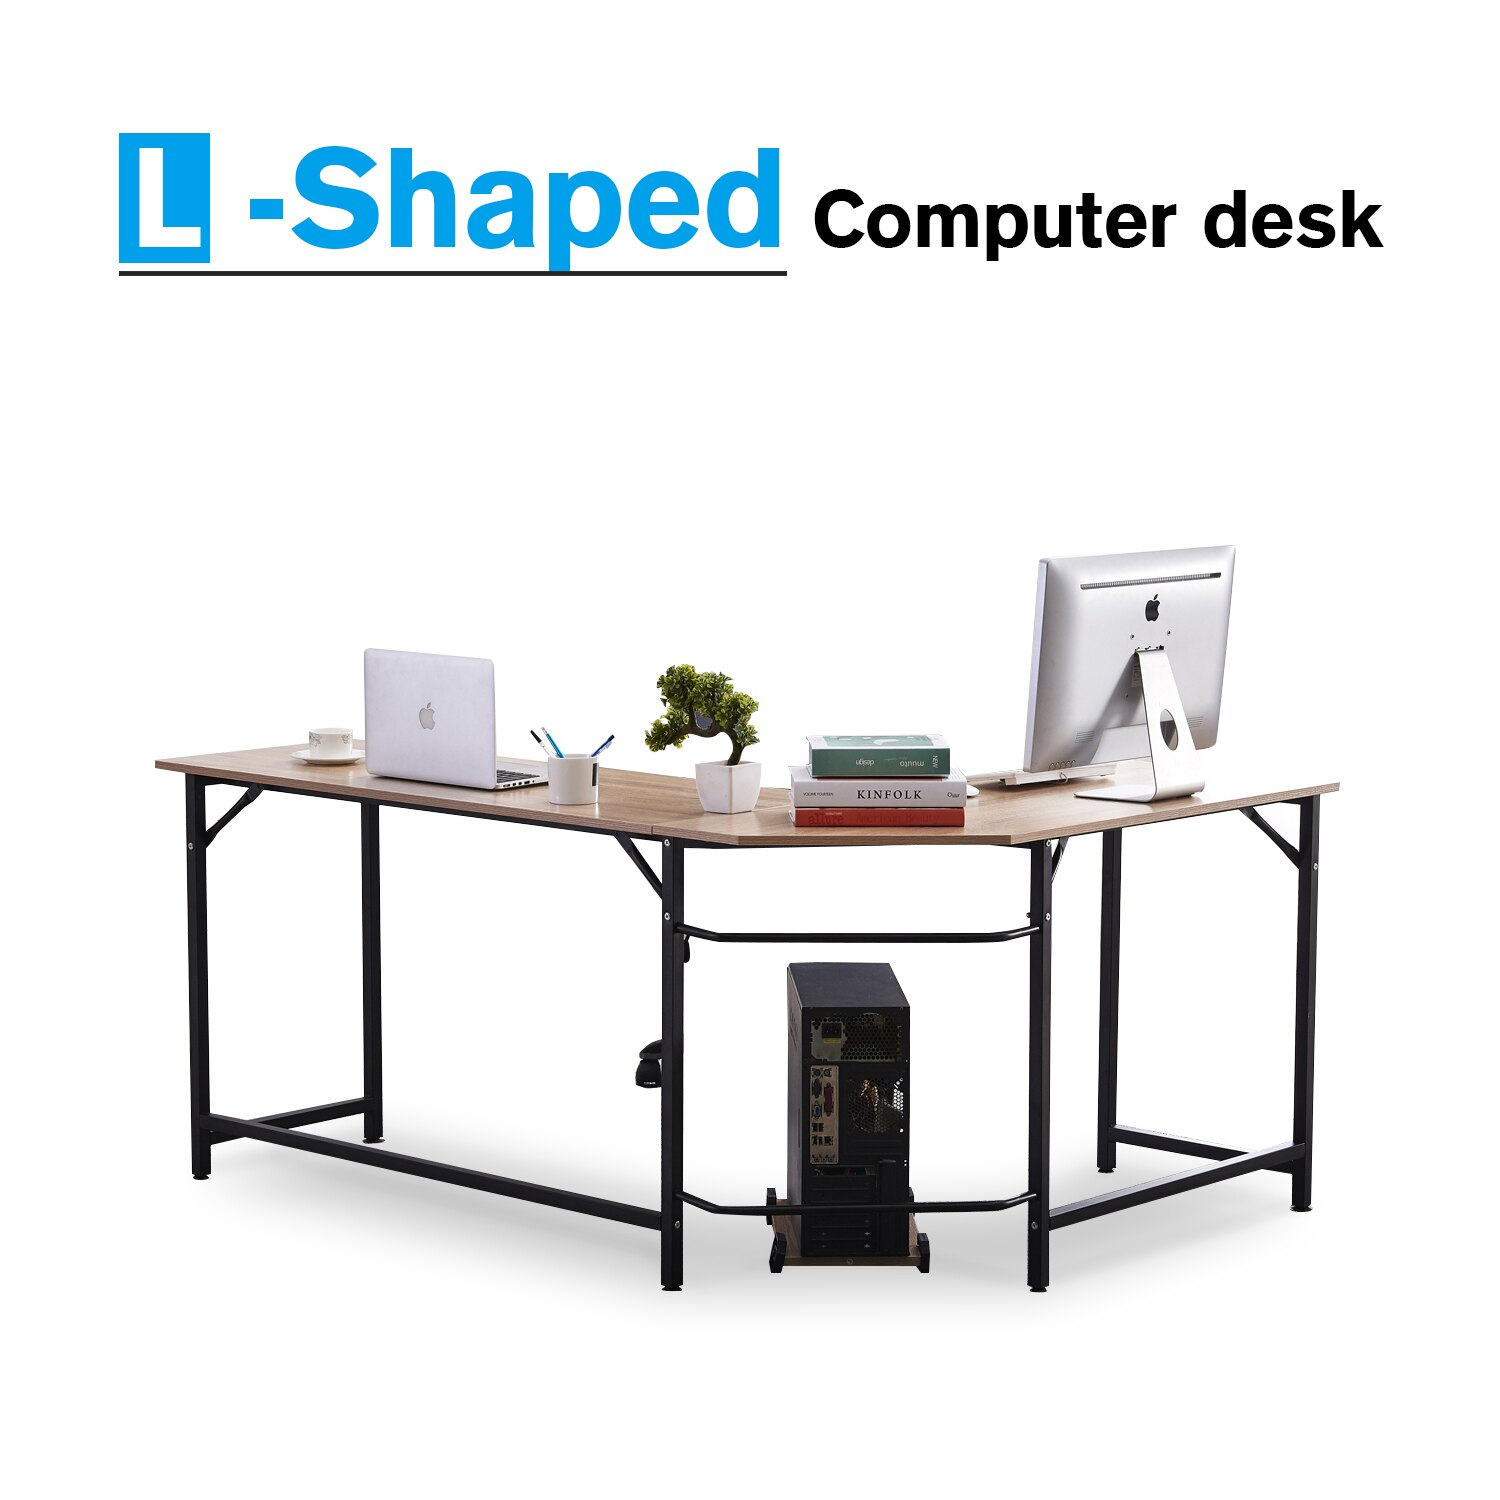 Office study desk Office Furniture Office Desk Lshape Corner Computer Pc Latop Study Table Workstation Home Office Wood Rakutencom Mcombo Office Desk Lshape Corner Computer Pc Latop Study Table